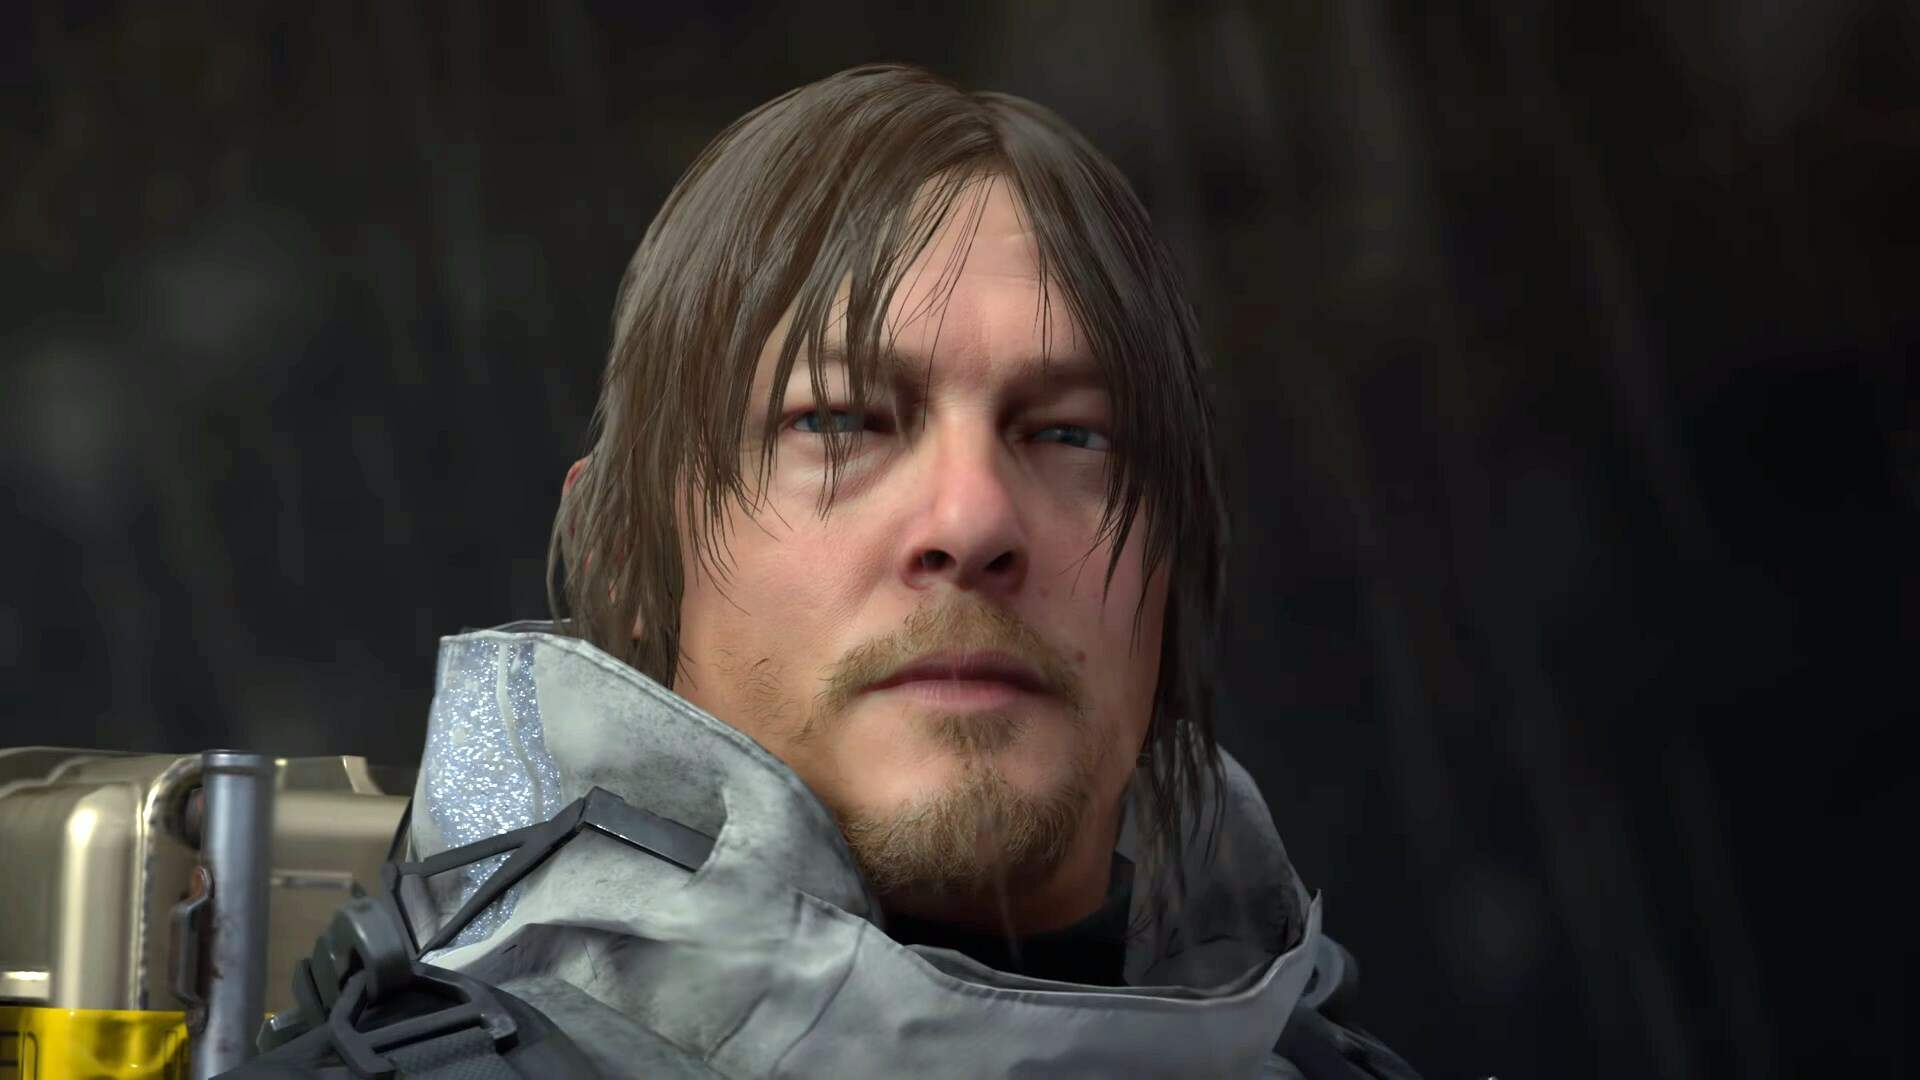 PS4 Days of Play Sale Returns With Death Stranding, Dreams, and Nioh 2 Savings